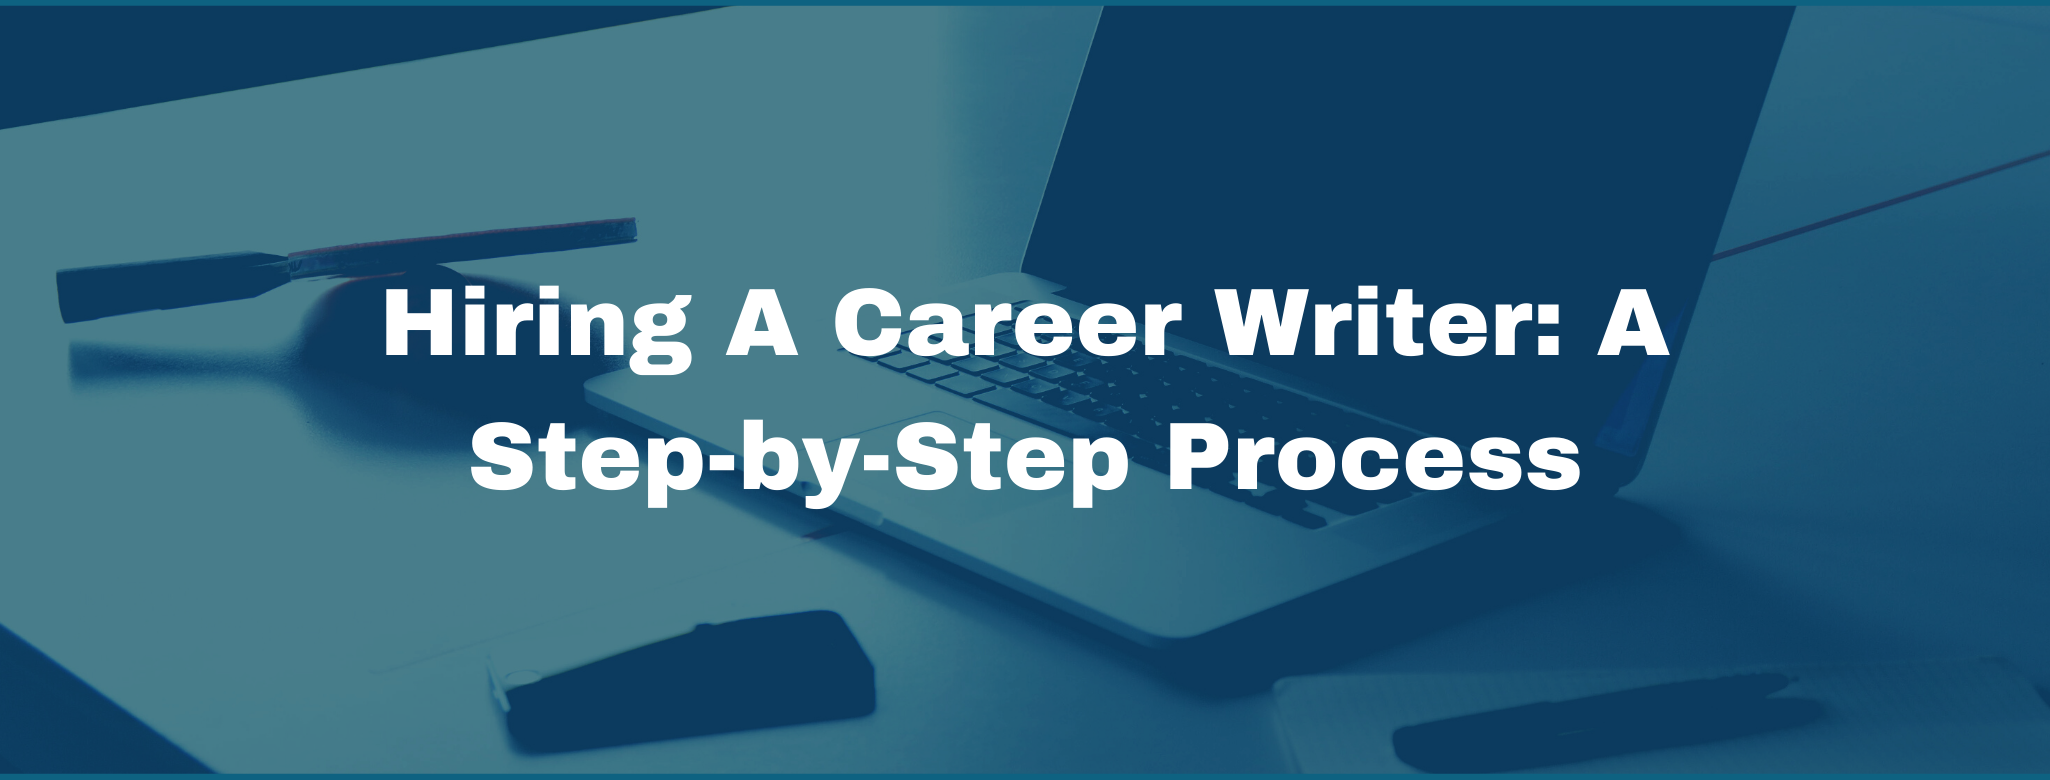 Hiring a Career Writer: The Step-by-Step Guide